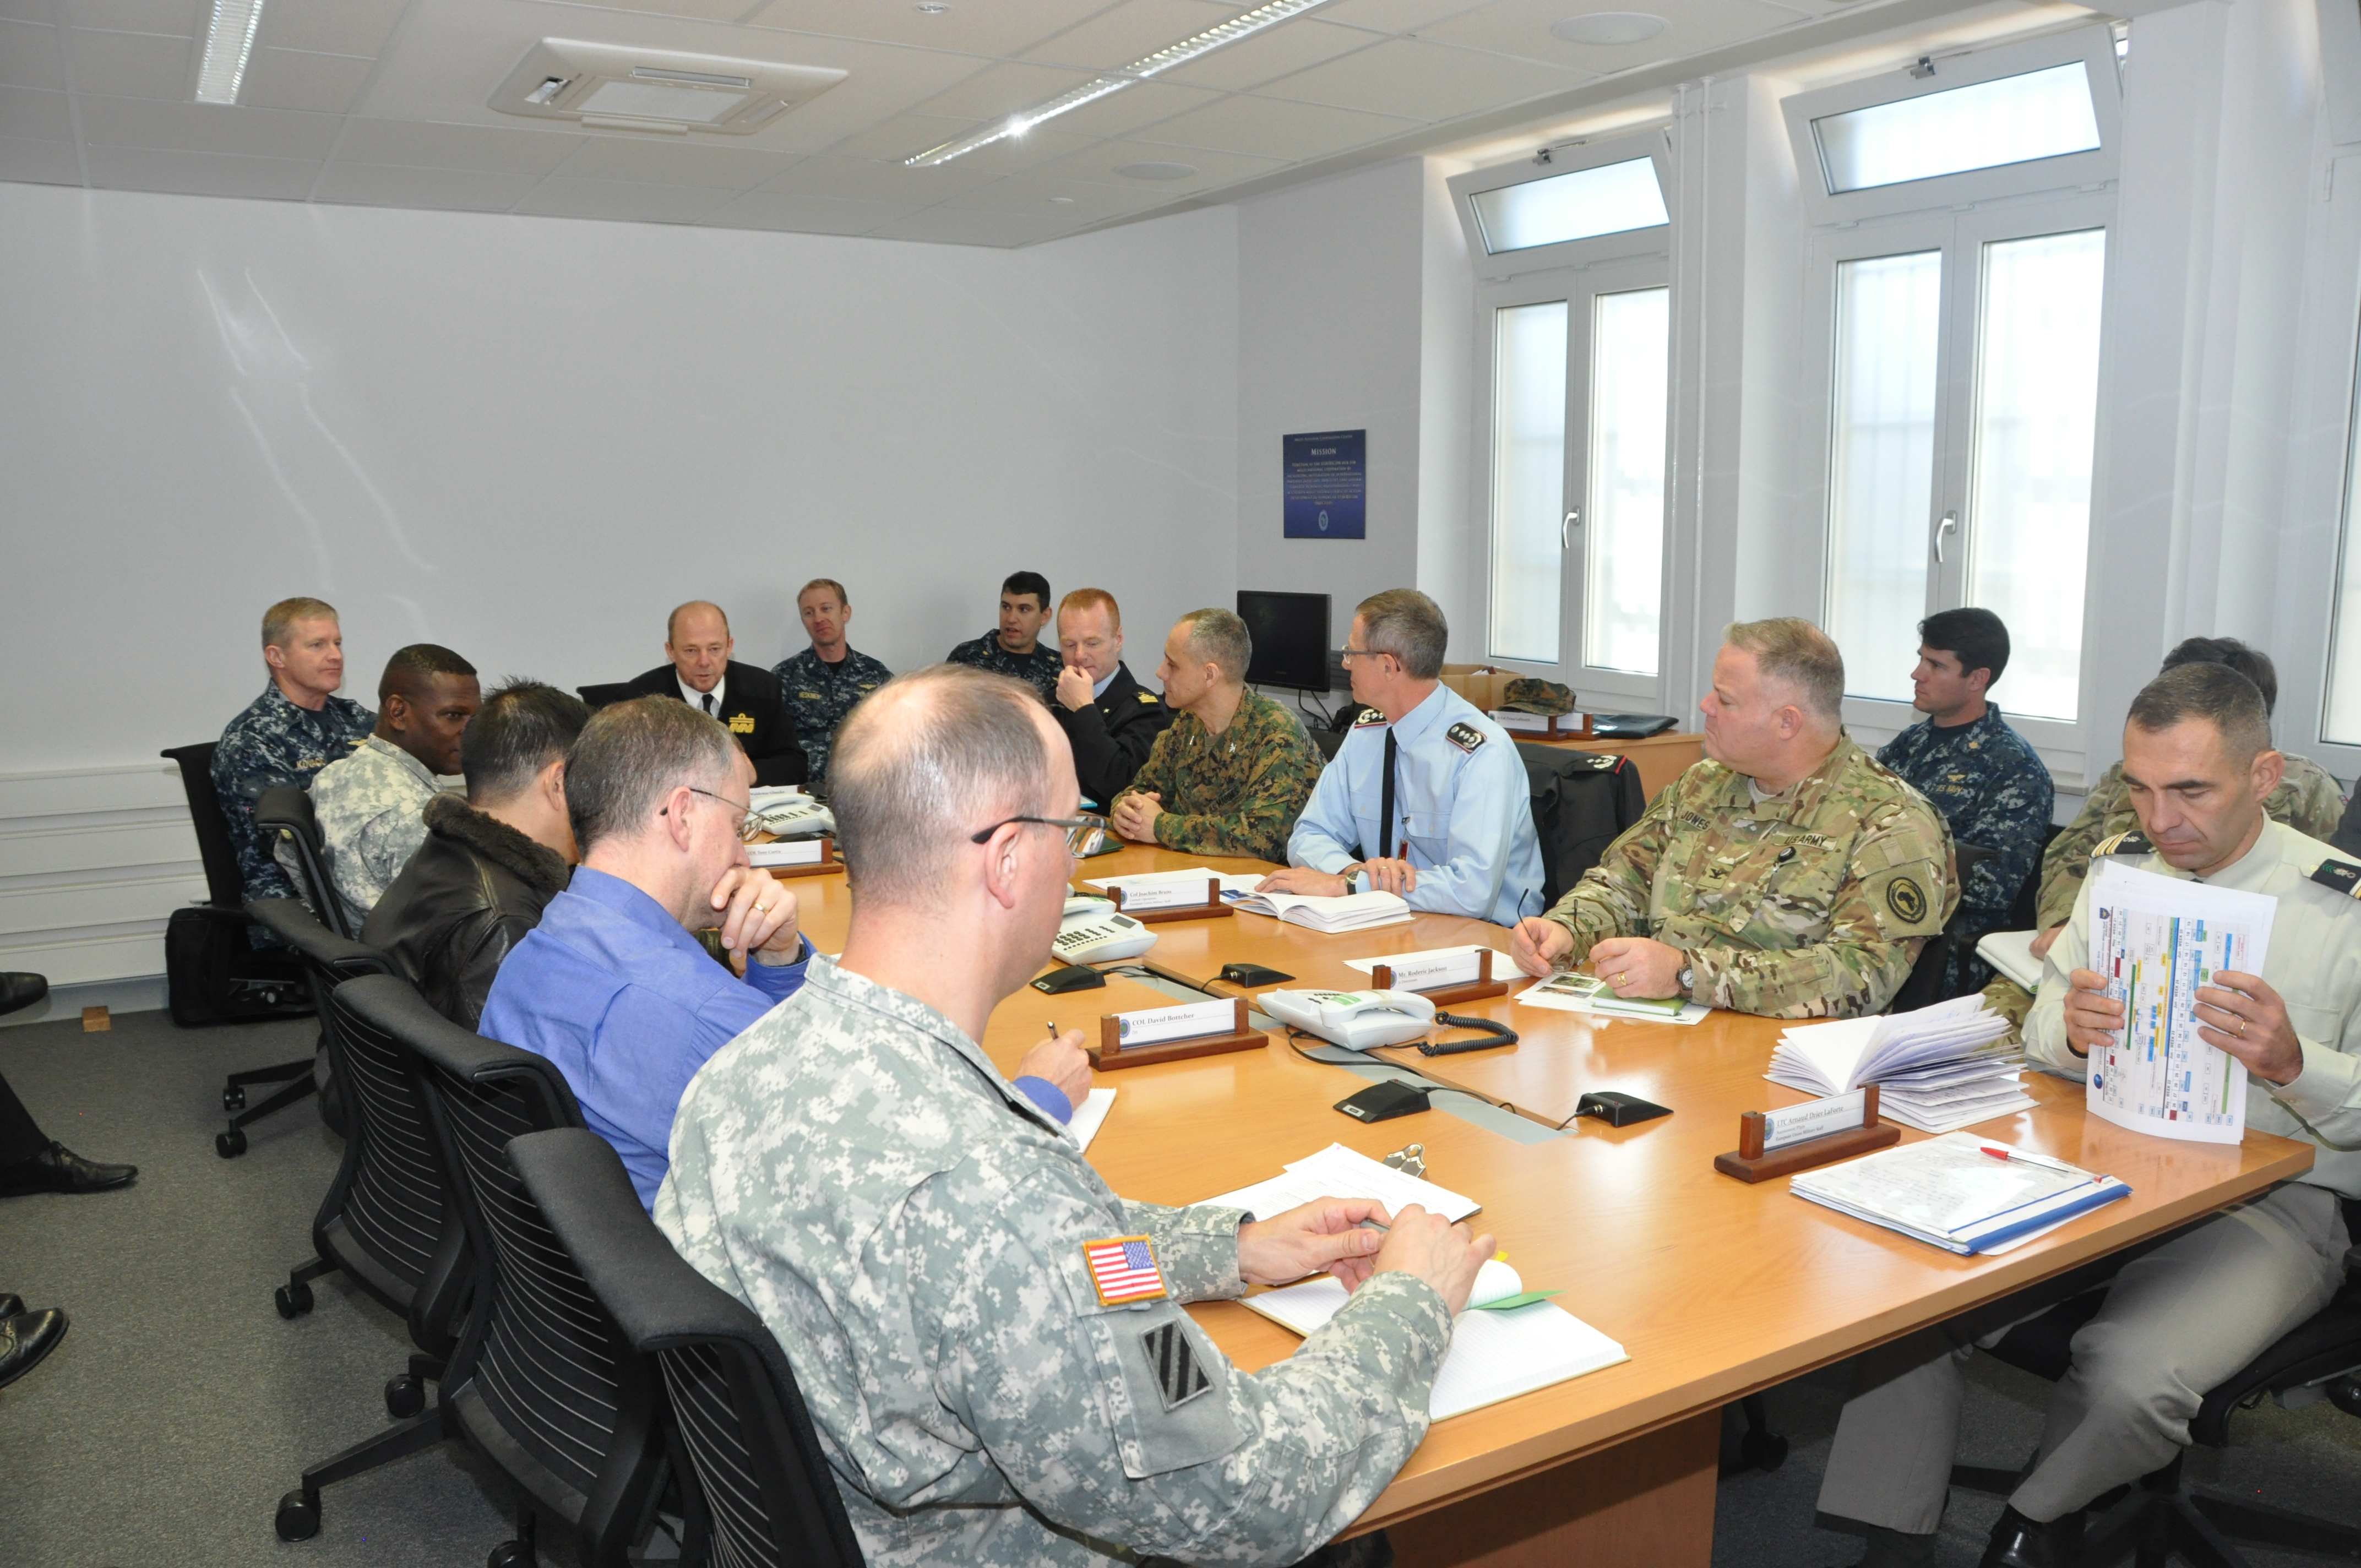 The EU's deputy director general of military staff Rear Adm. Waldemar Gluszko, addresses AFRICOM and EUMS staff during a roundtable discussion.